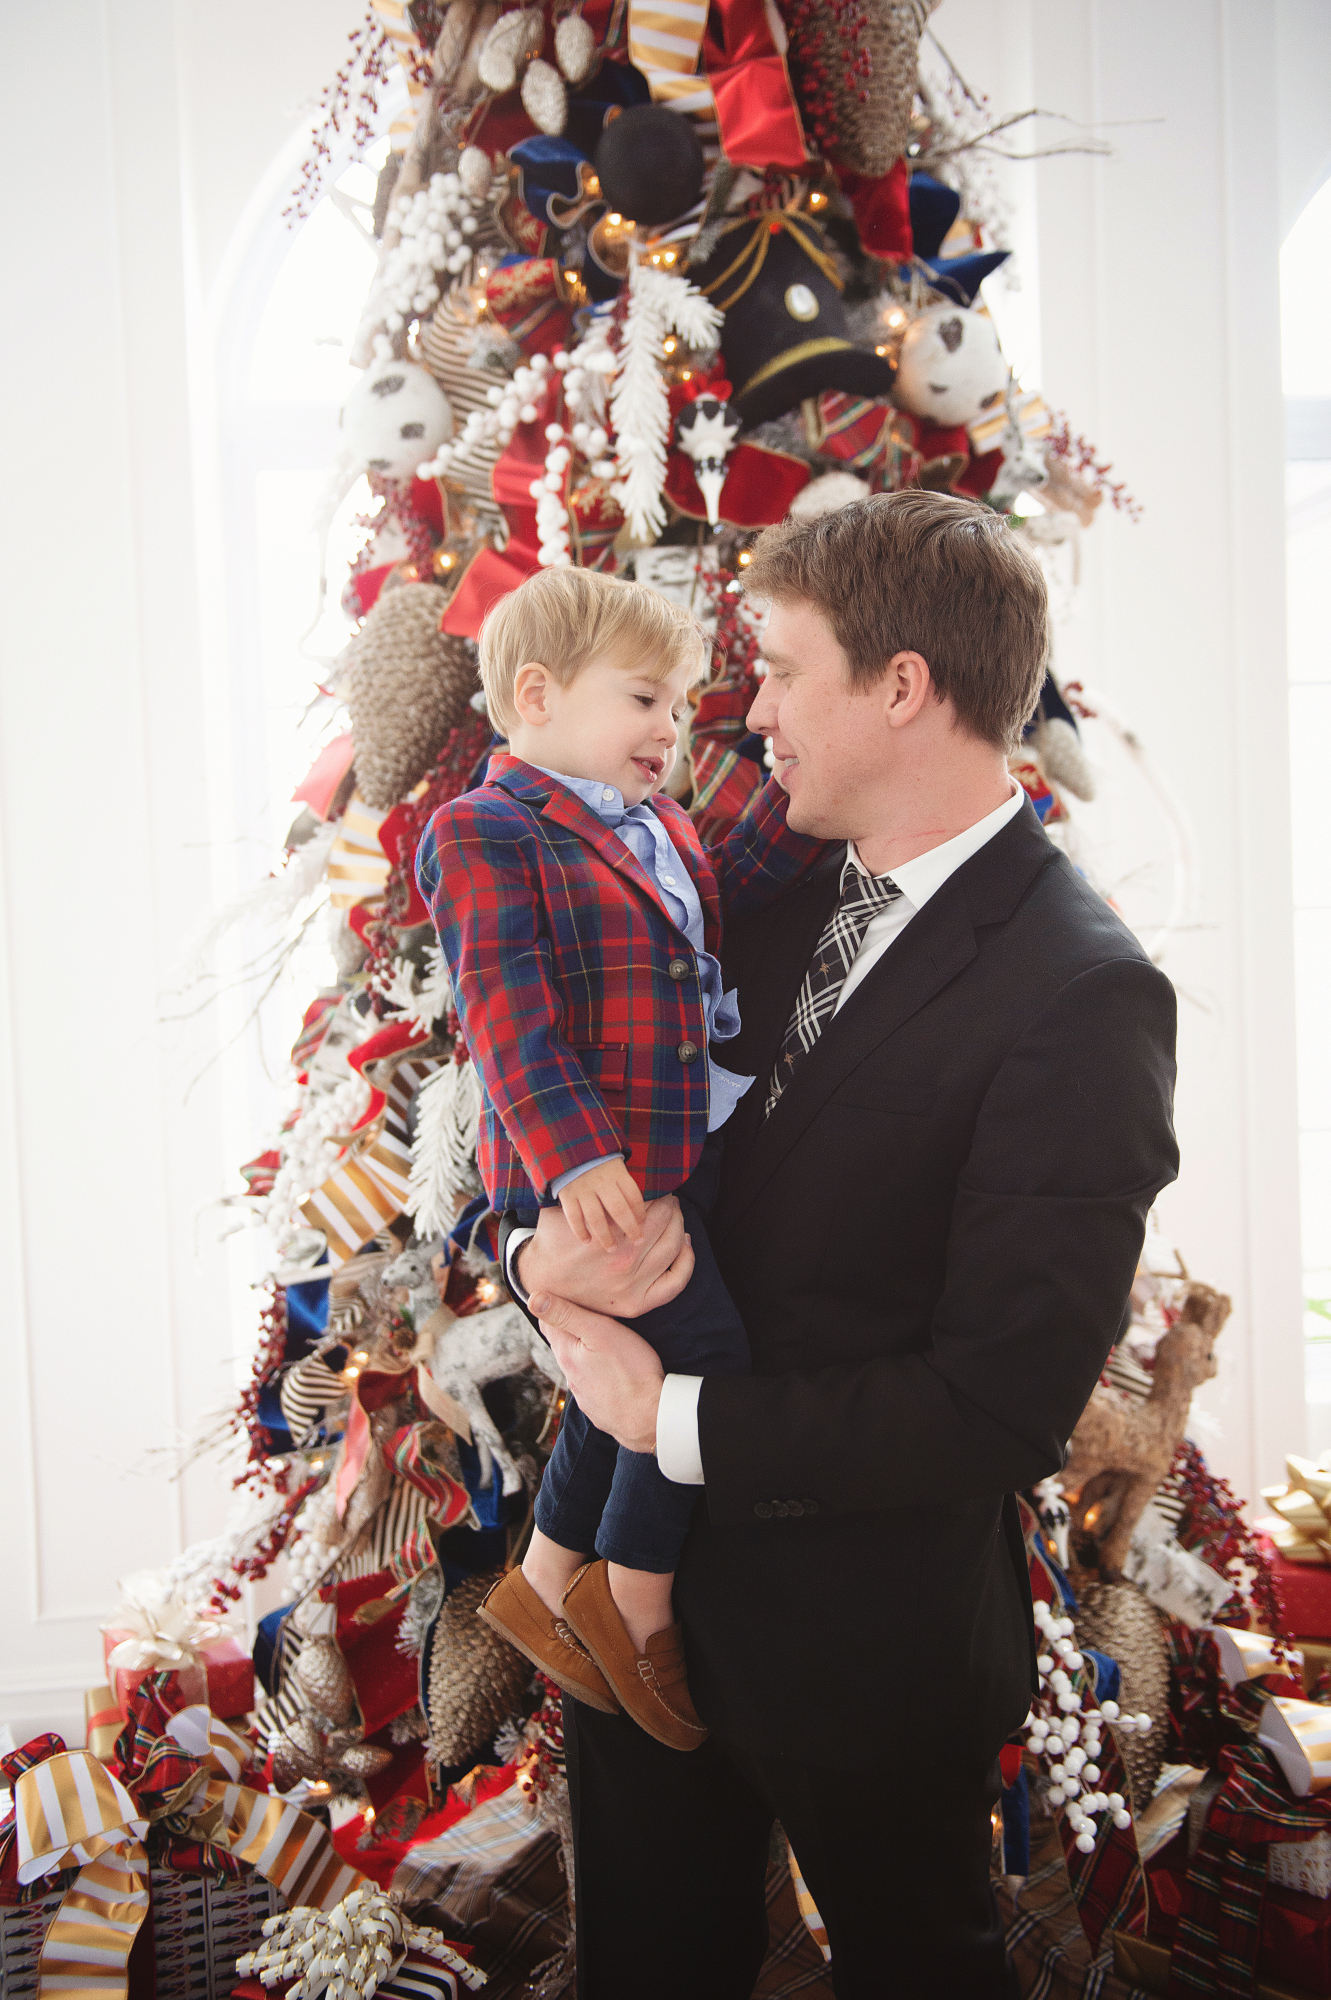 family Christmas card outfit inspiration, smocked Christmas dress baby, baby boy fashion Christmas, pinterest Christmas tree decor, shop hello holidays, Emily Gemma, the sweetest thing blog | Merry Christmas Wishes To You & Yours🎁❤️🎄 [Our Christmas Card 2019] by popular Oklahoma life and style blog, The Sweetest Thing: image a dad and son standing in front of their Christmas tree and wearing a Zara BASIC SERGED SKINNY JEANS, Zara  LEATHER LOAFERS, Janie and Jack POPLIN SHIRT, Janie and Jack PLAID WOOL BLAZER, Nordstrom Burberry men's tie, Nordstrom Boss Huge/Genius Trim Fit Solid Wool Suit.